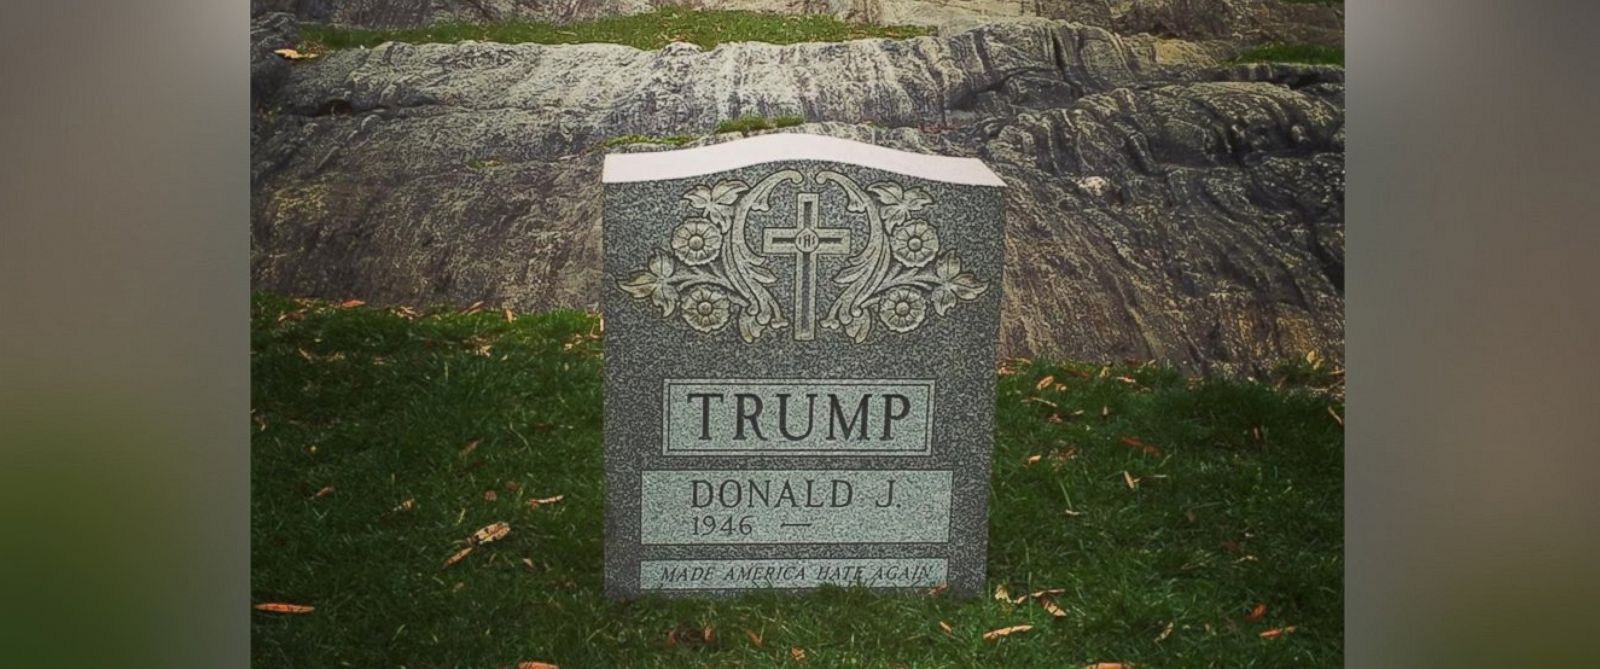 Donald Trump tombstone found, removed from Central Park_132417